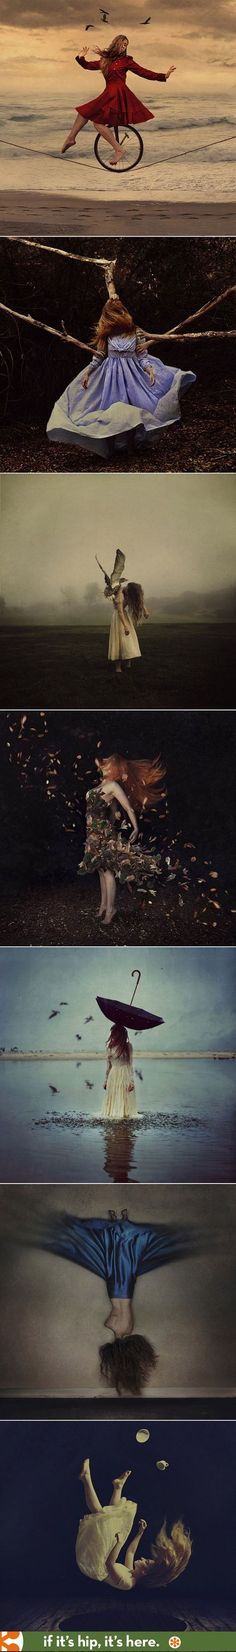 The magical yet eerie self-portraits of photographer Brooke Shaden. More at http://www.ifitshipitshere.com/dreamlike-self-portraits-brooke-shaden/